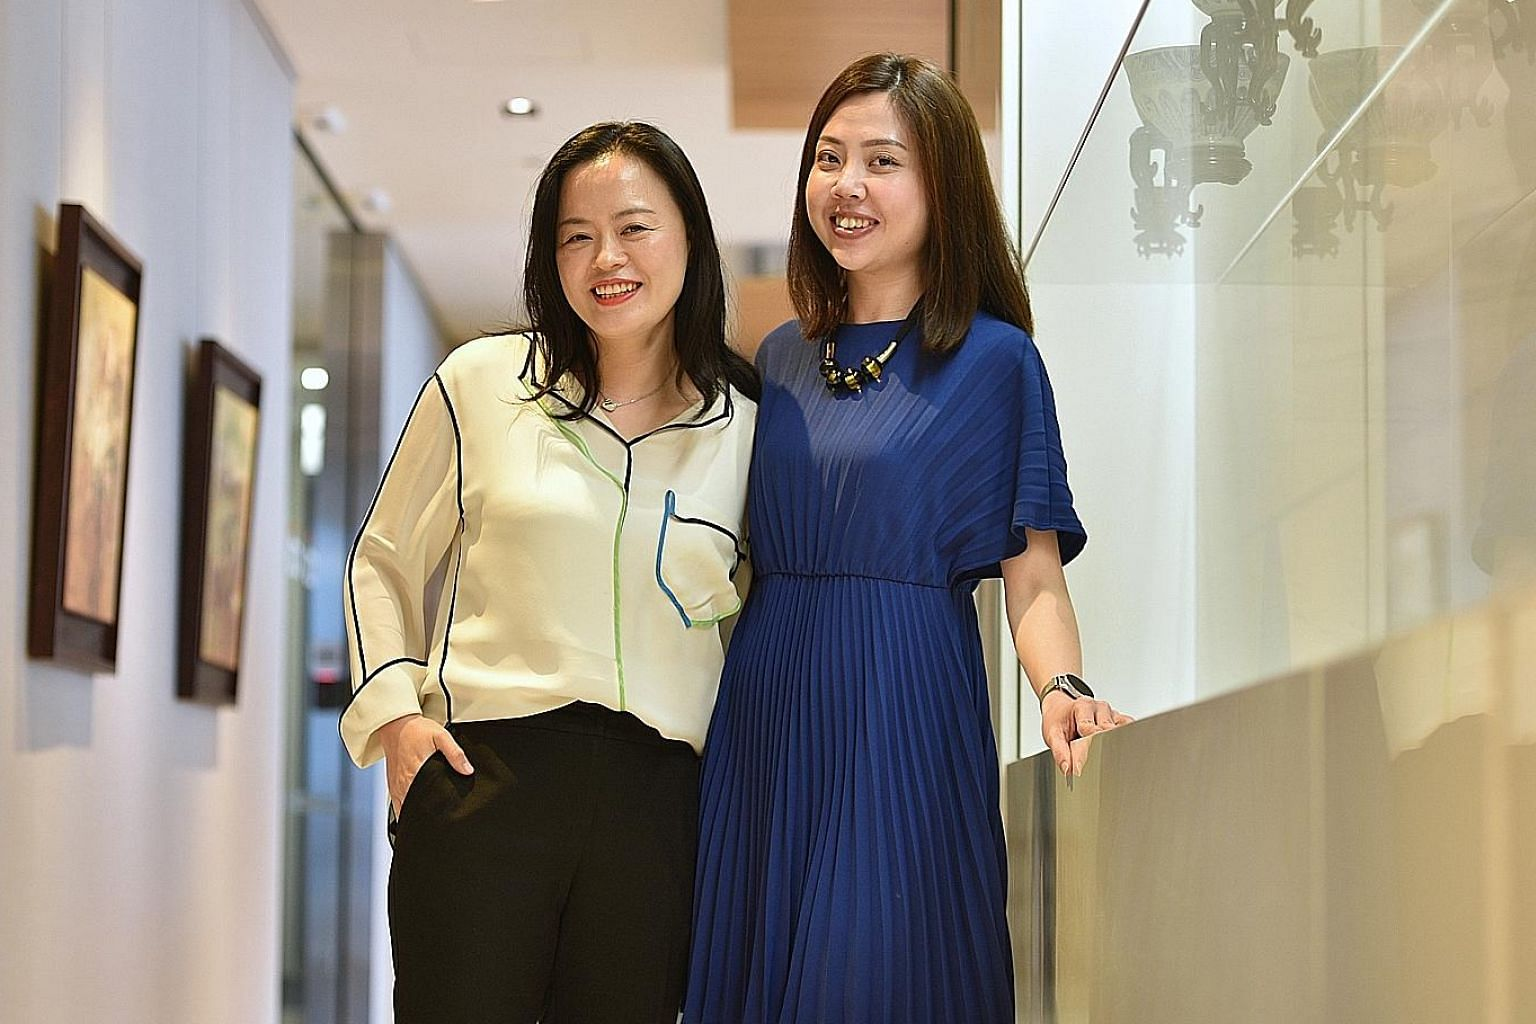 Ms Kay Choi (far left), who is from South Korea, and her Singaporean colleague, Ms April Ho, in the Citi Singapore office. The two women have struck up a friendship outside of work.